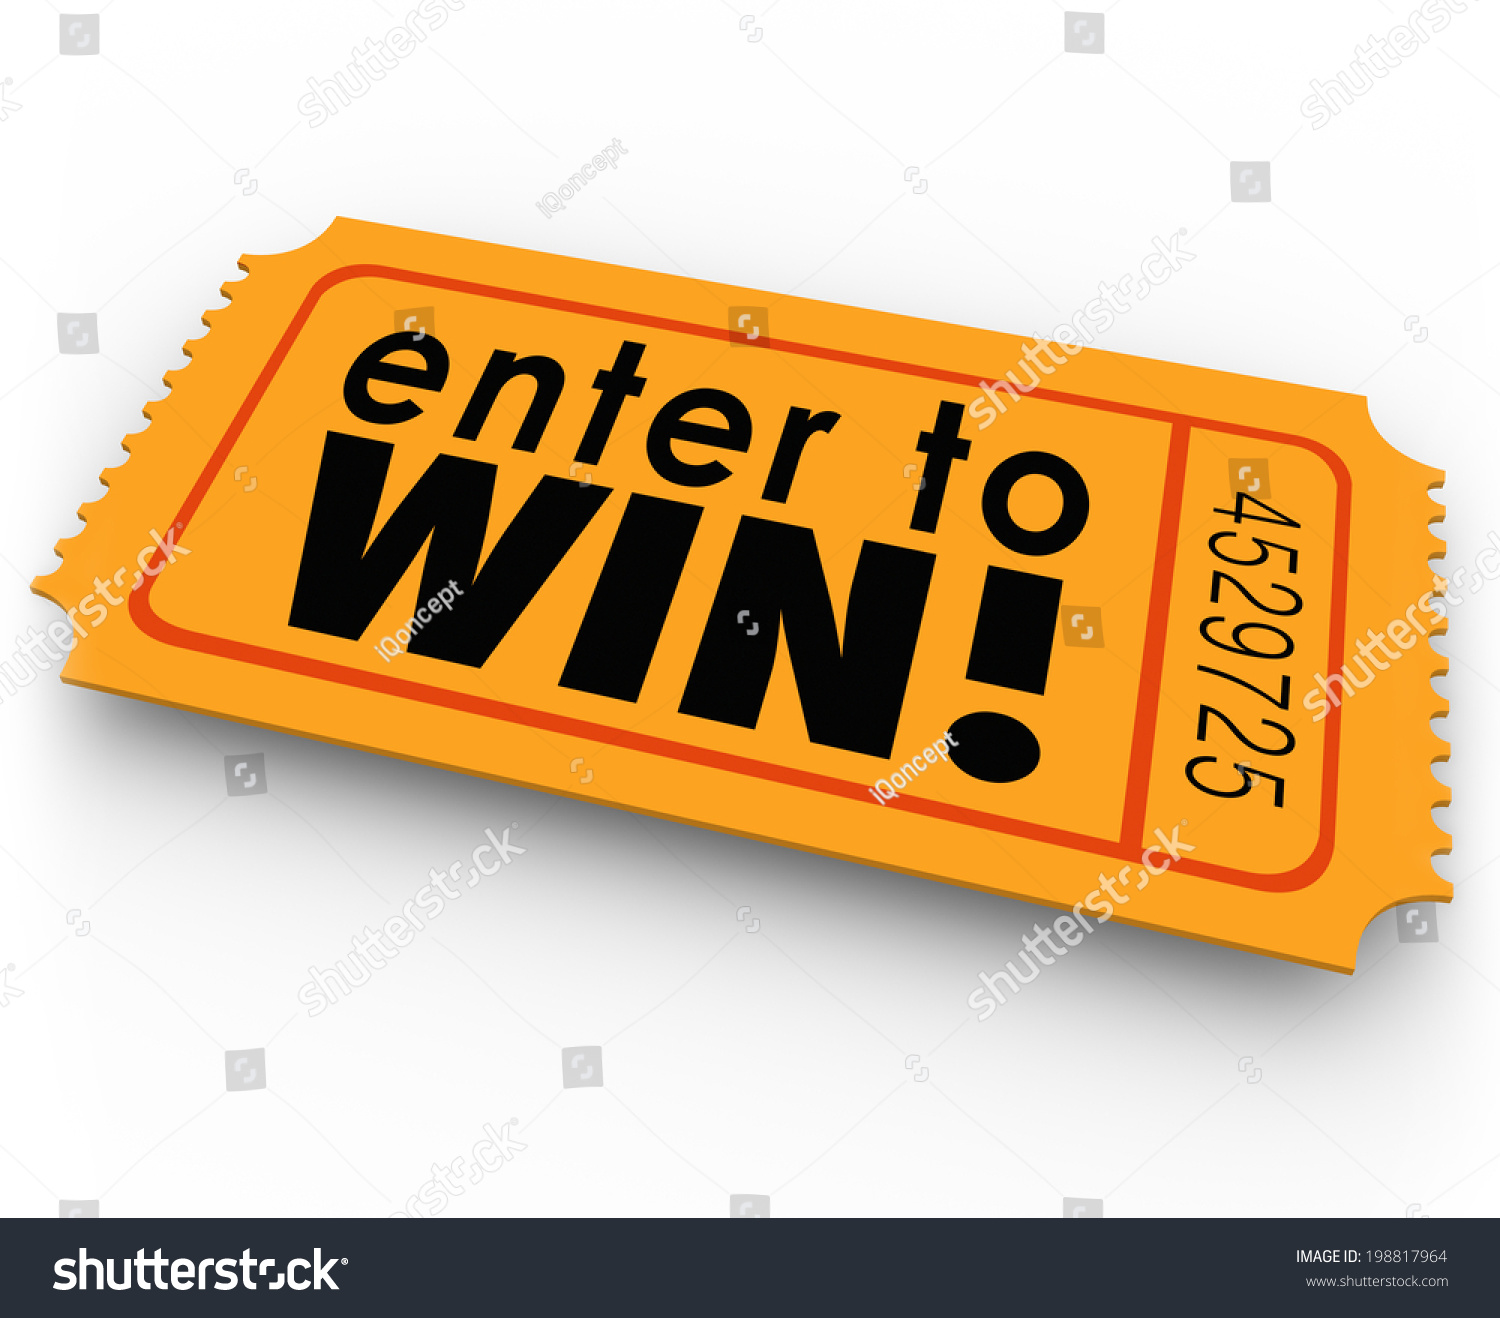 enter win words orange ticket raffle stock illustration  enter to win words orange ticket for a raffle or jackpt drawing winner of cash or